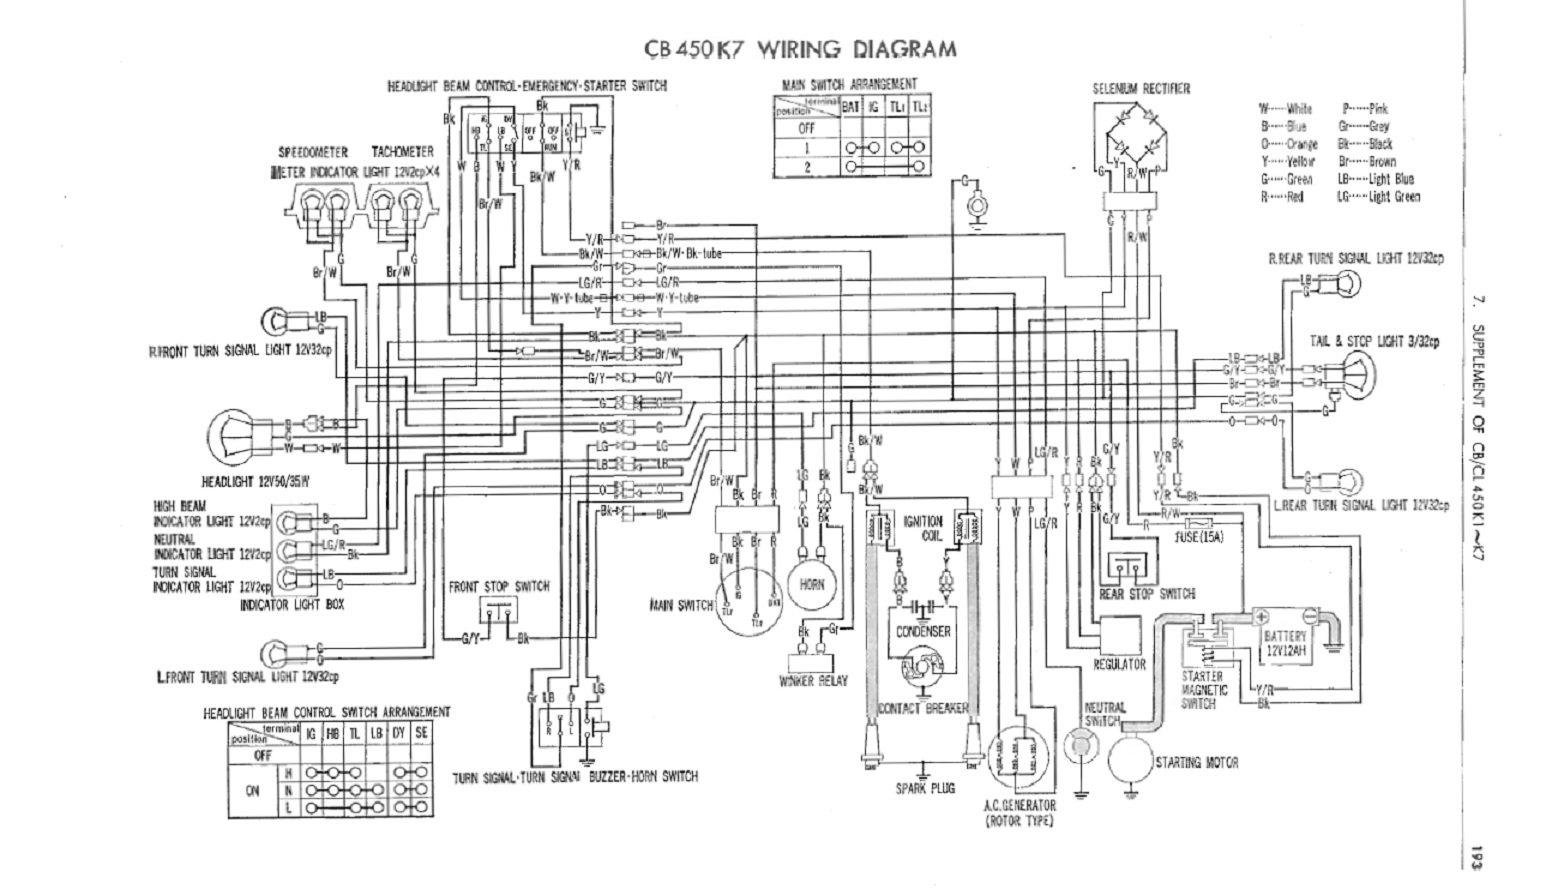 1986 Honda Cb450sc Wiring Diagram Trusted Diagrams Xl500r U2022 Image Information Cmx250c